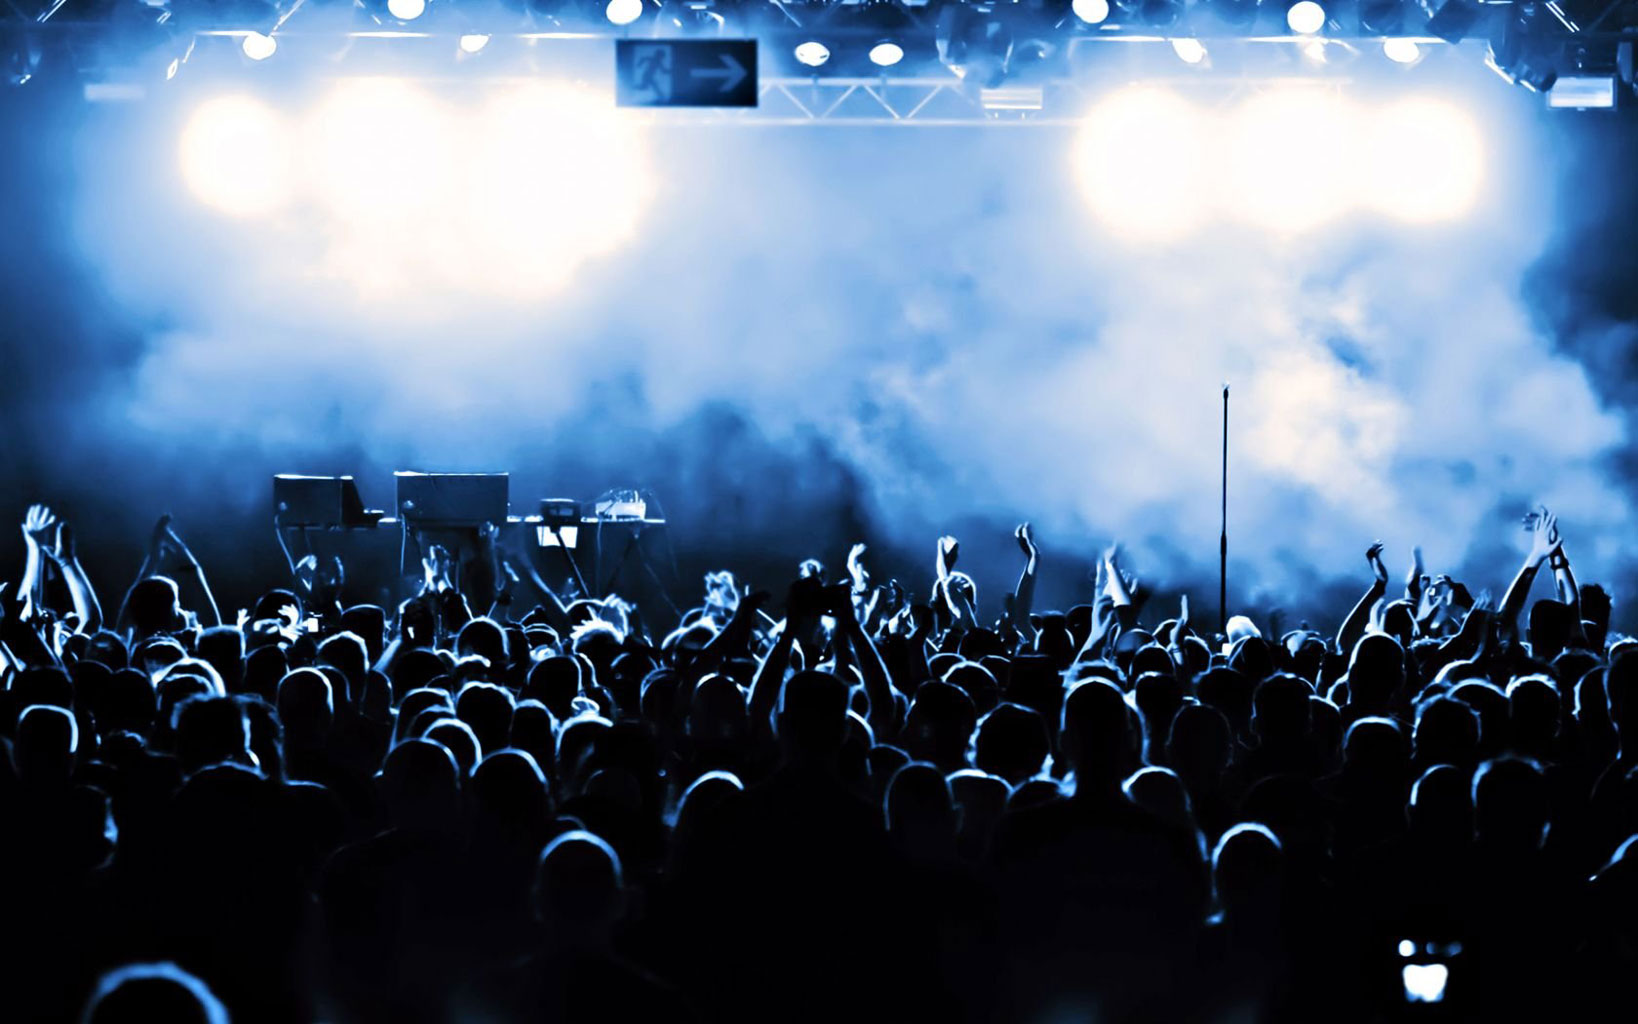 The Rock Band Concert Crowds Tablet Phone Wallpaper Background   Album 1638x1024